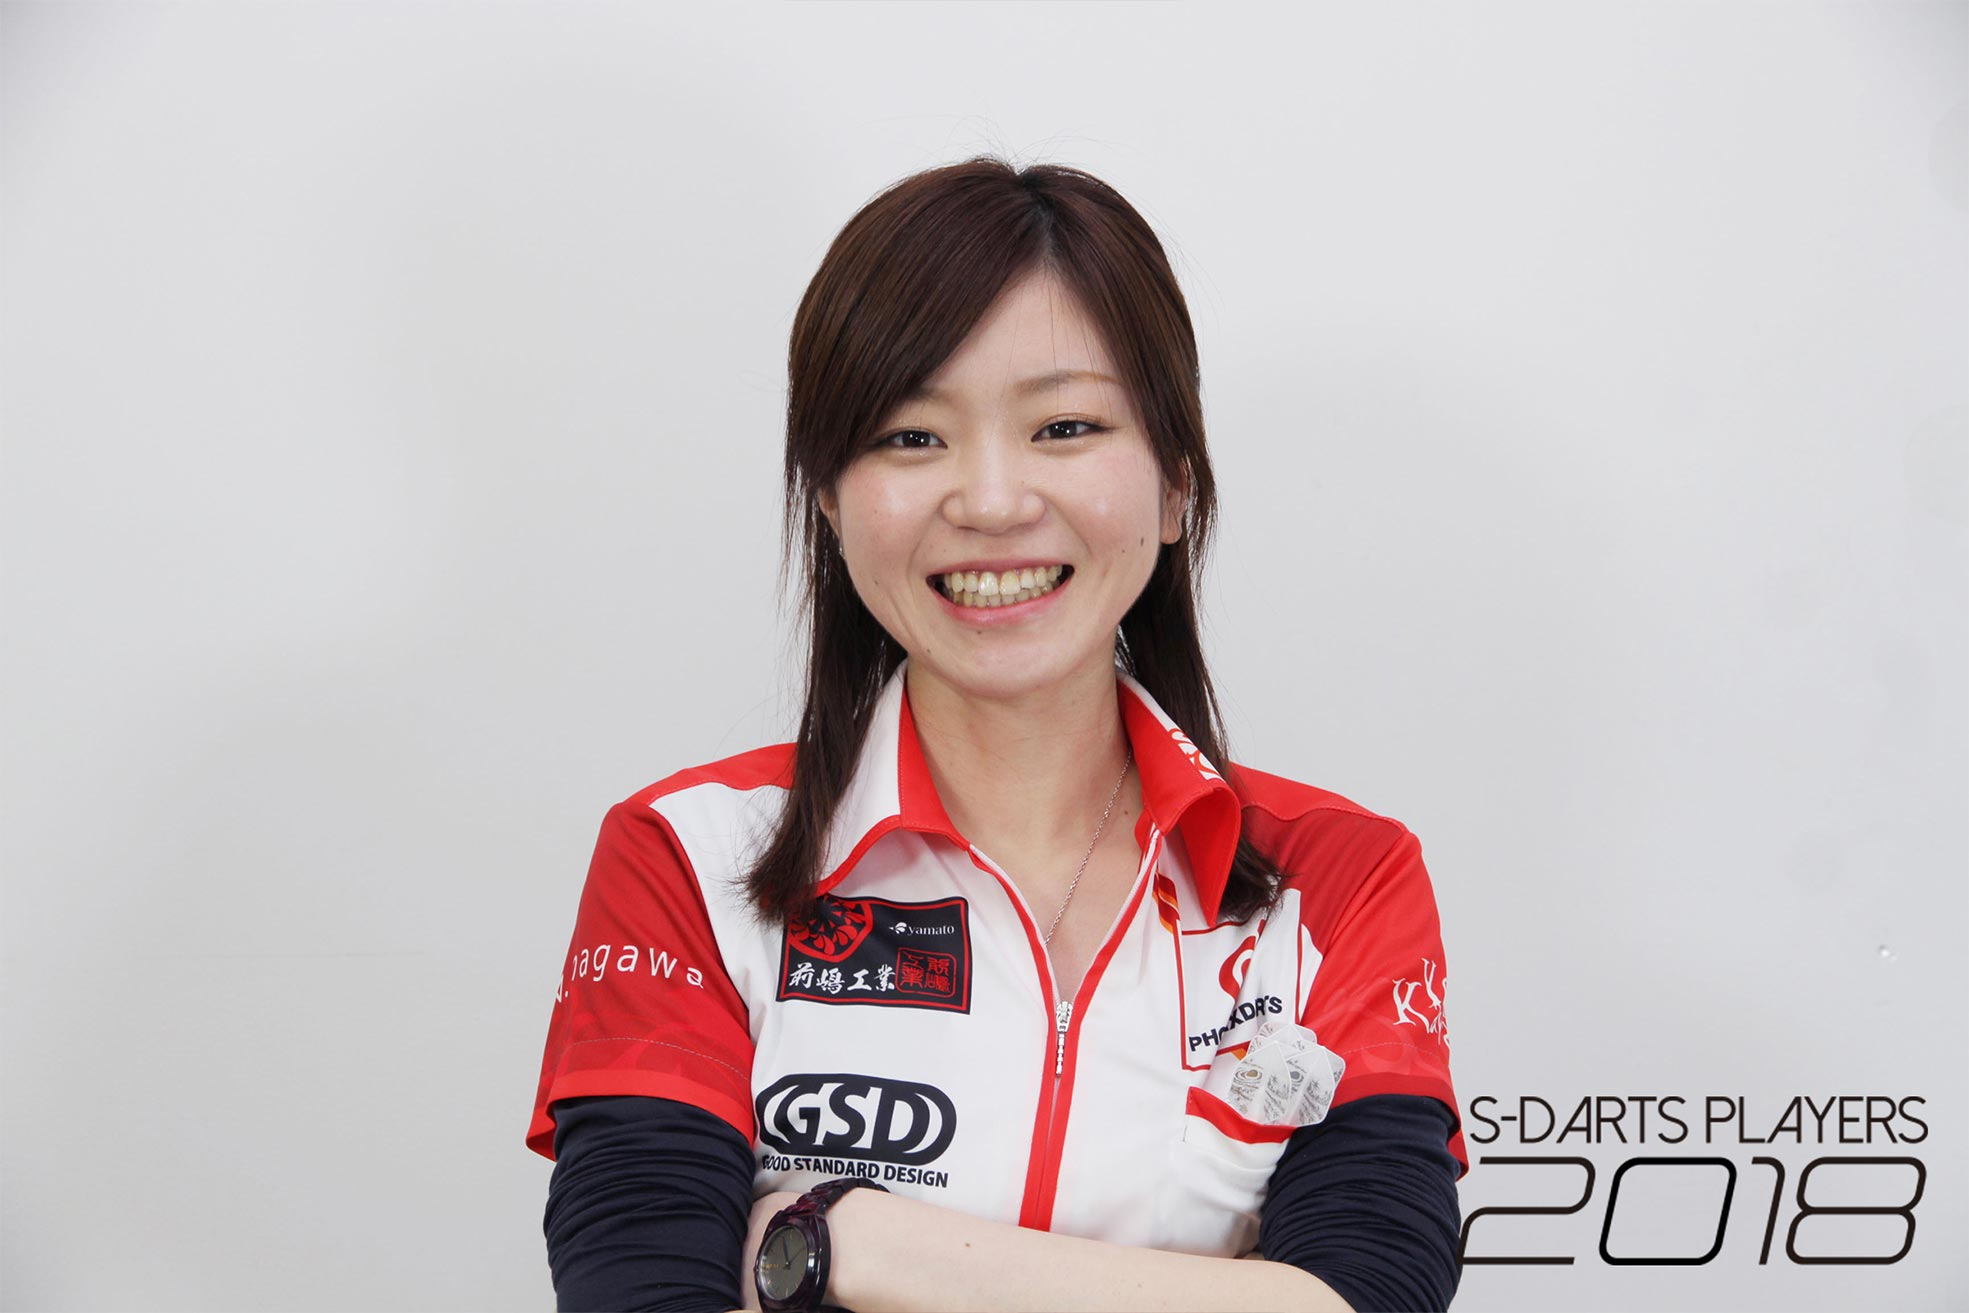 S-DARTS PLAYERS 2018│川� 圭恵